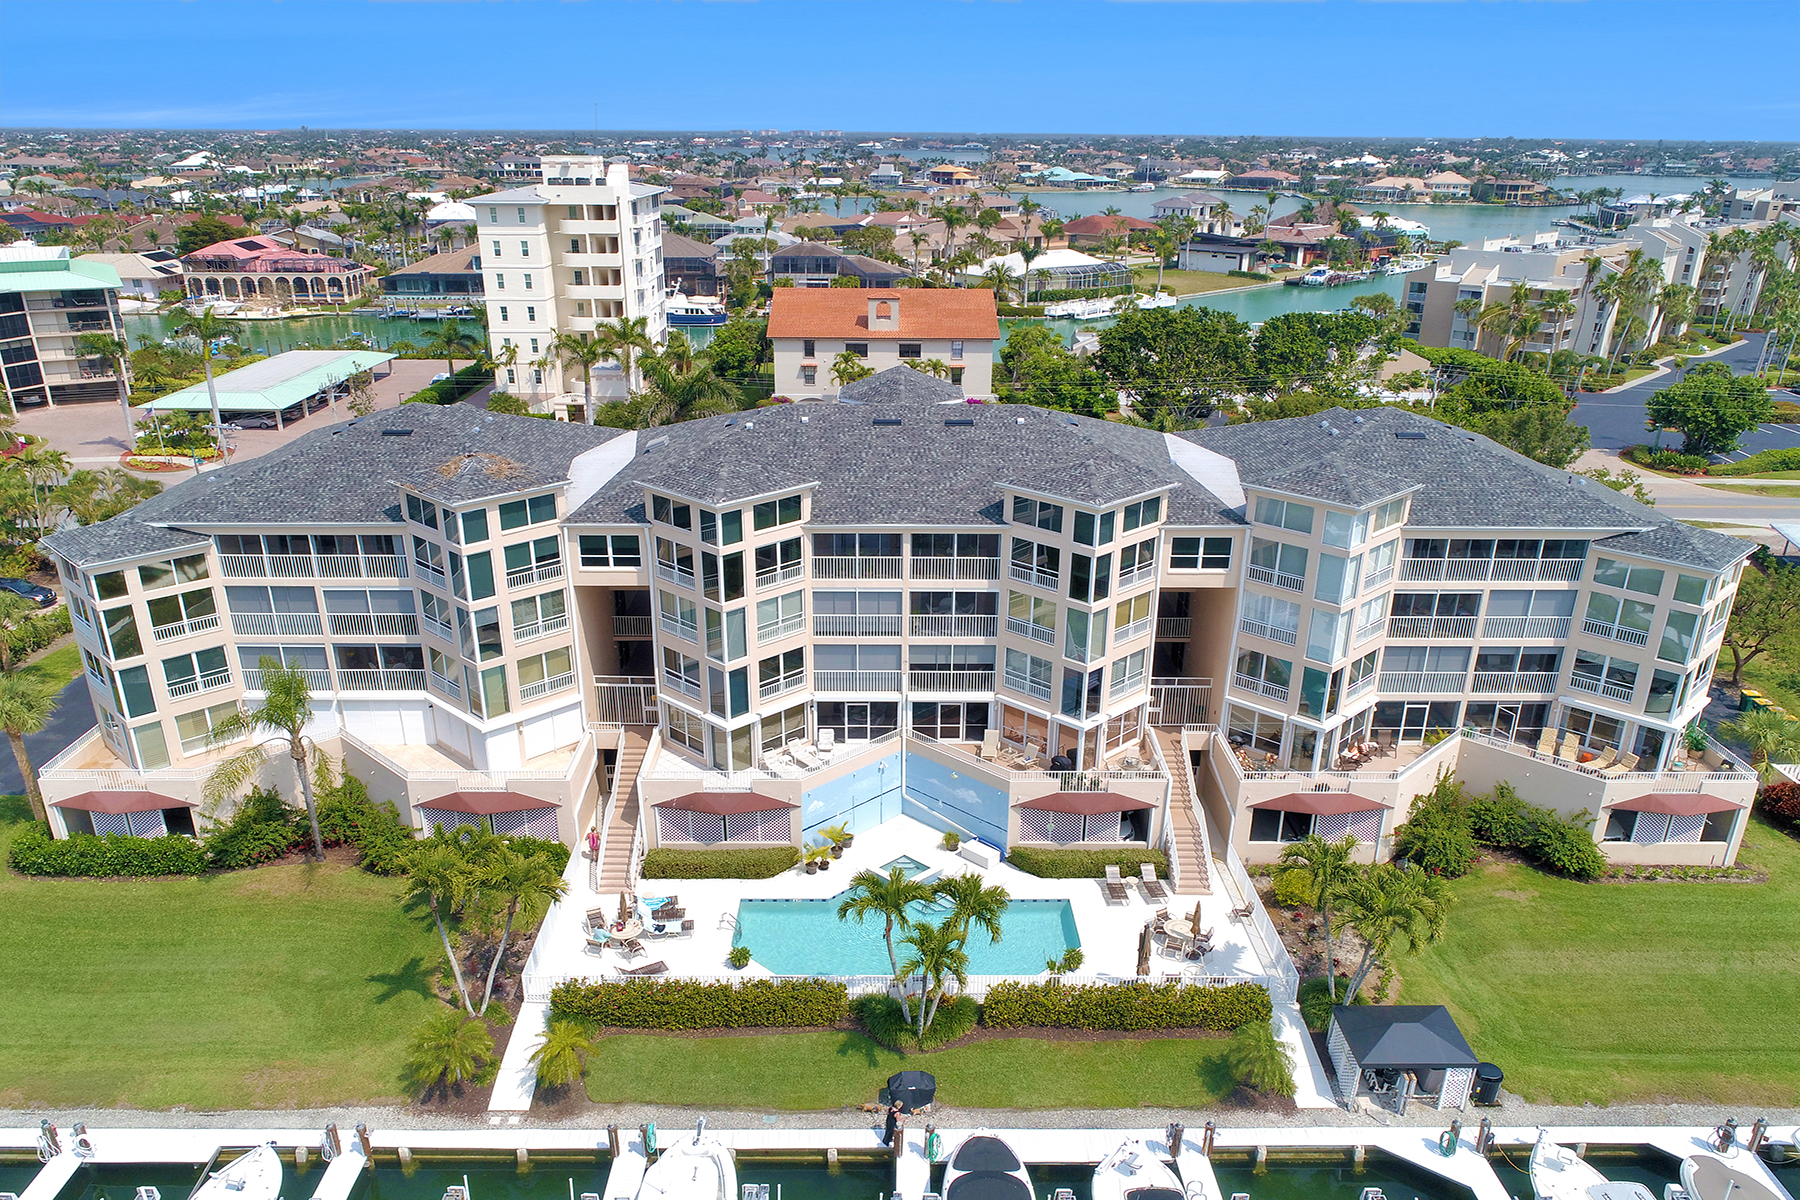 Condominium for Sale at MARCO ISLAND 870 Collier Ct 201, Marco Island, Florida 34145 United States